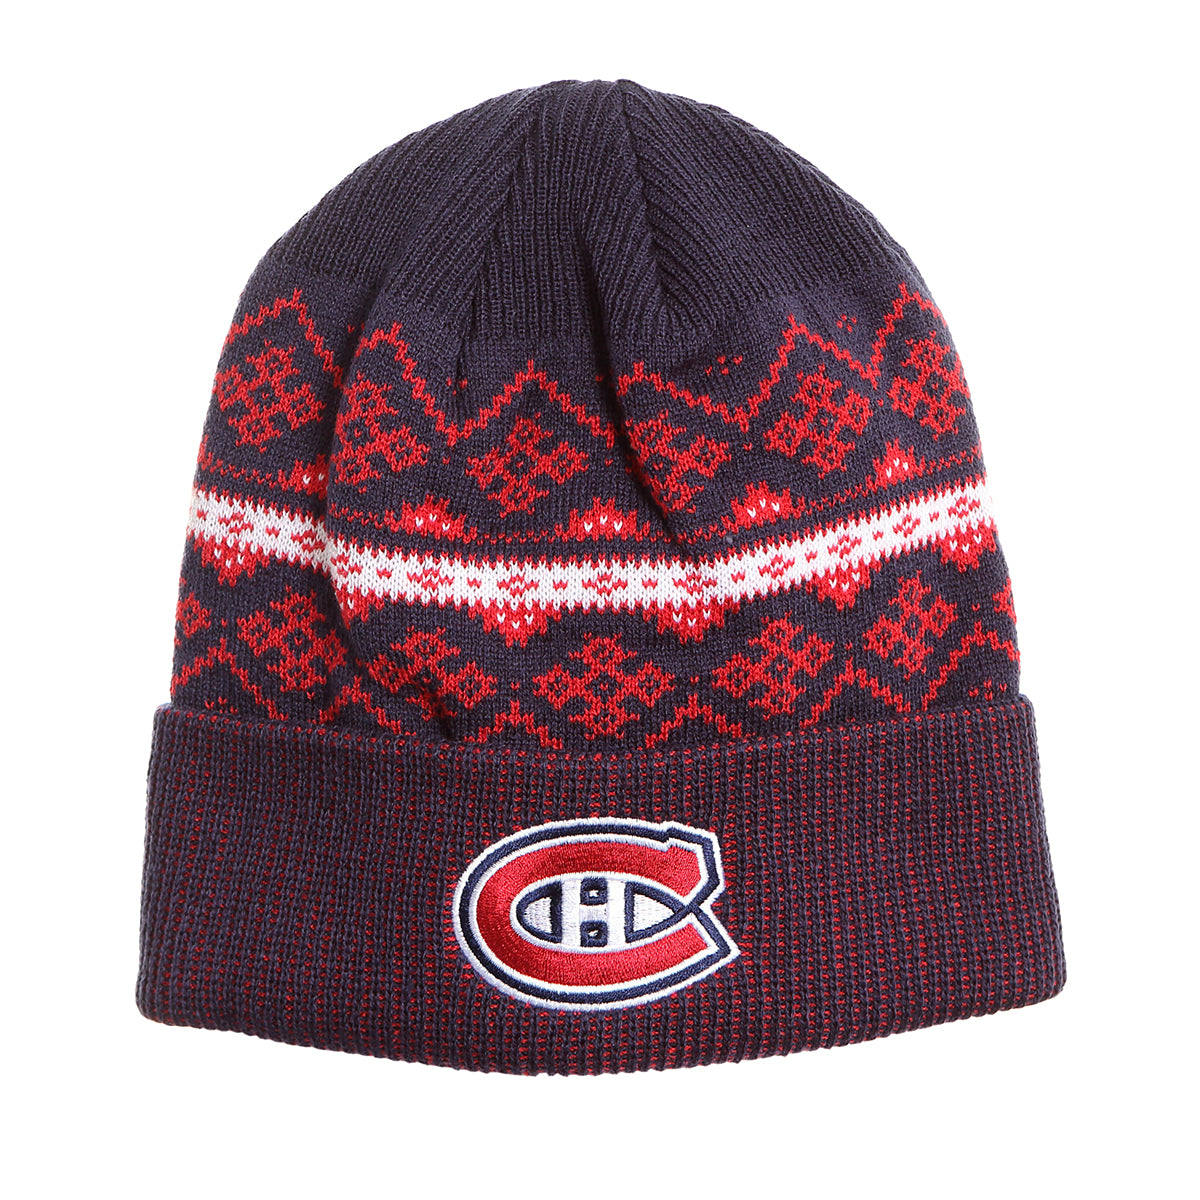 NHL Licence Hat - Montreal Canadiens Adidas Cuffed d7f771d2d